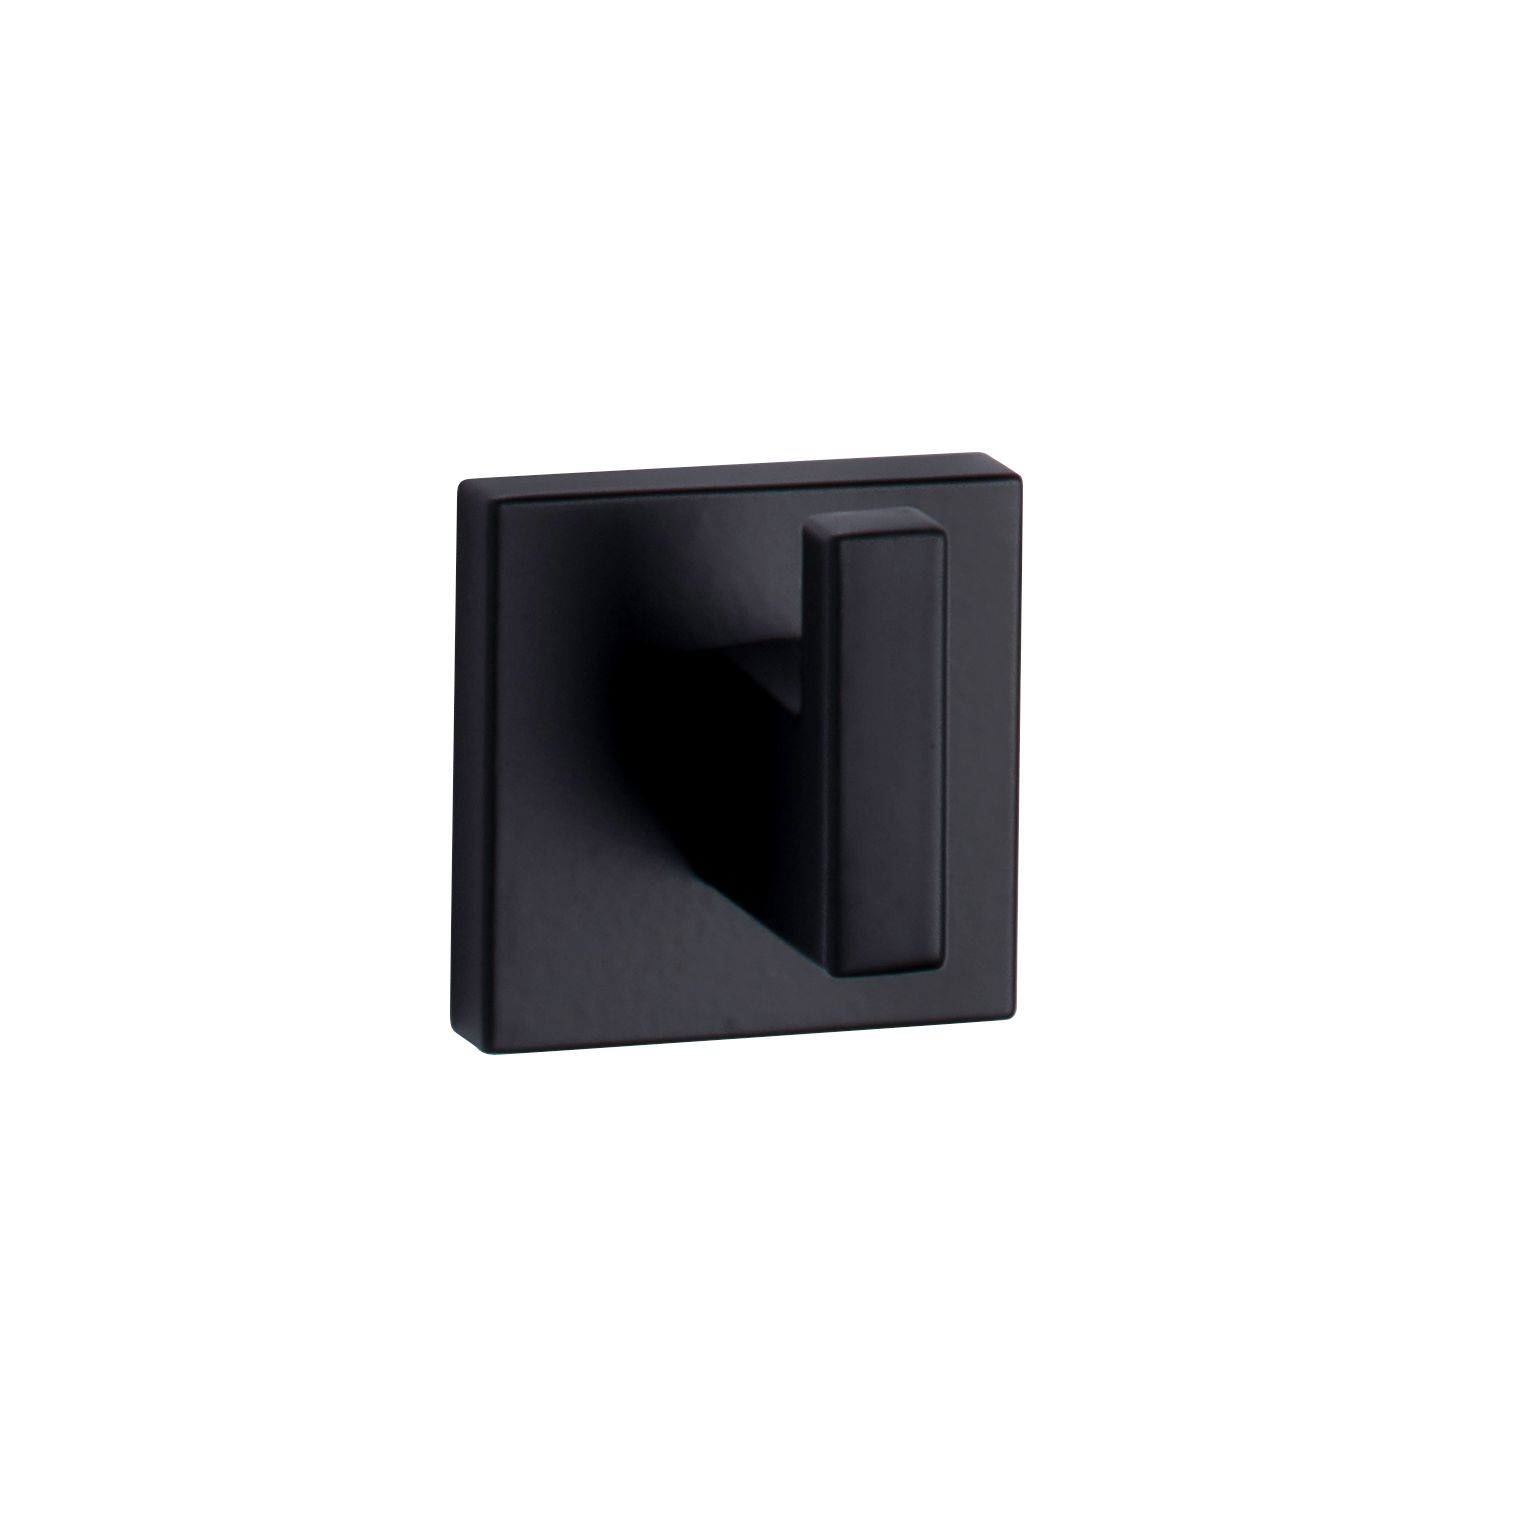 ALLUSION Single Robe Hook — Matte Black